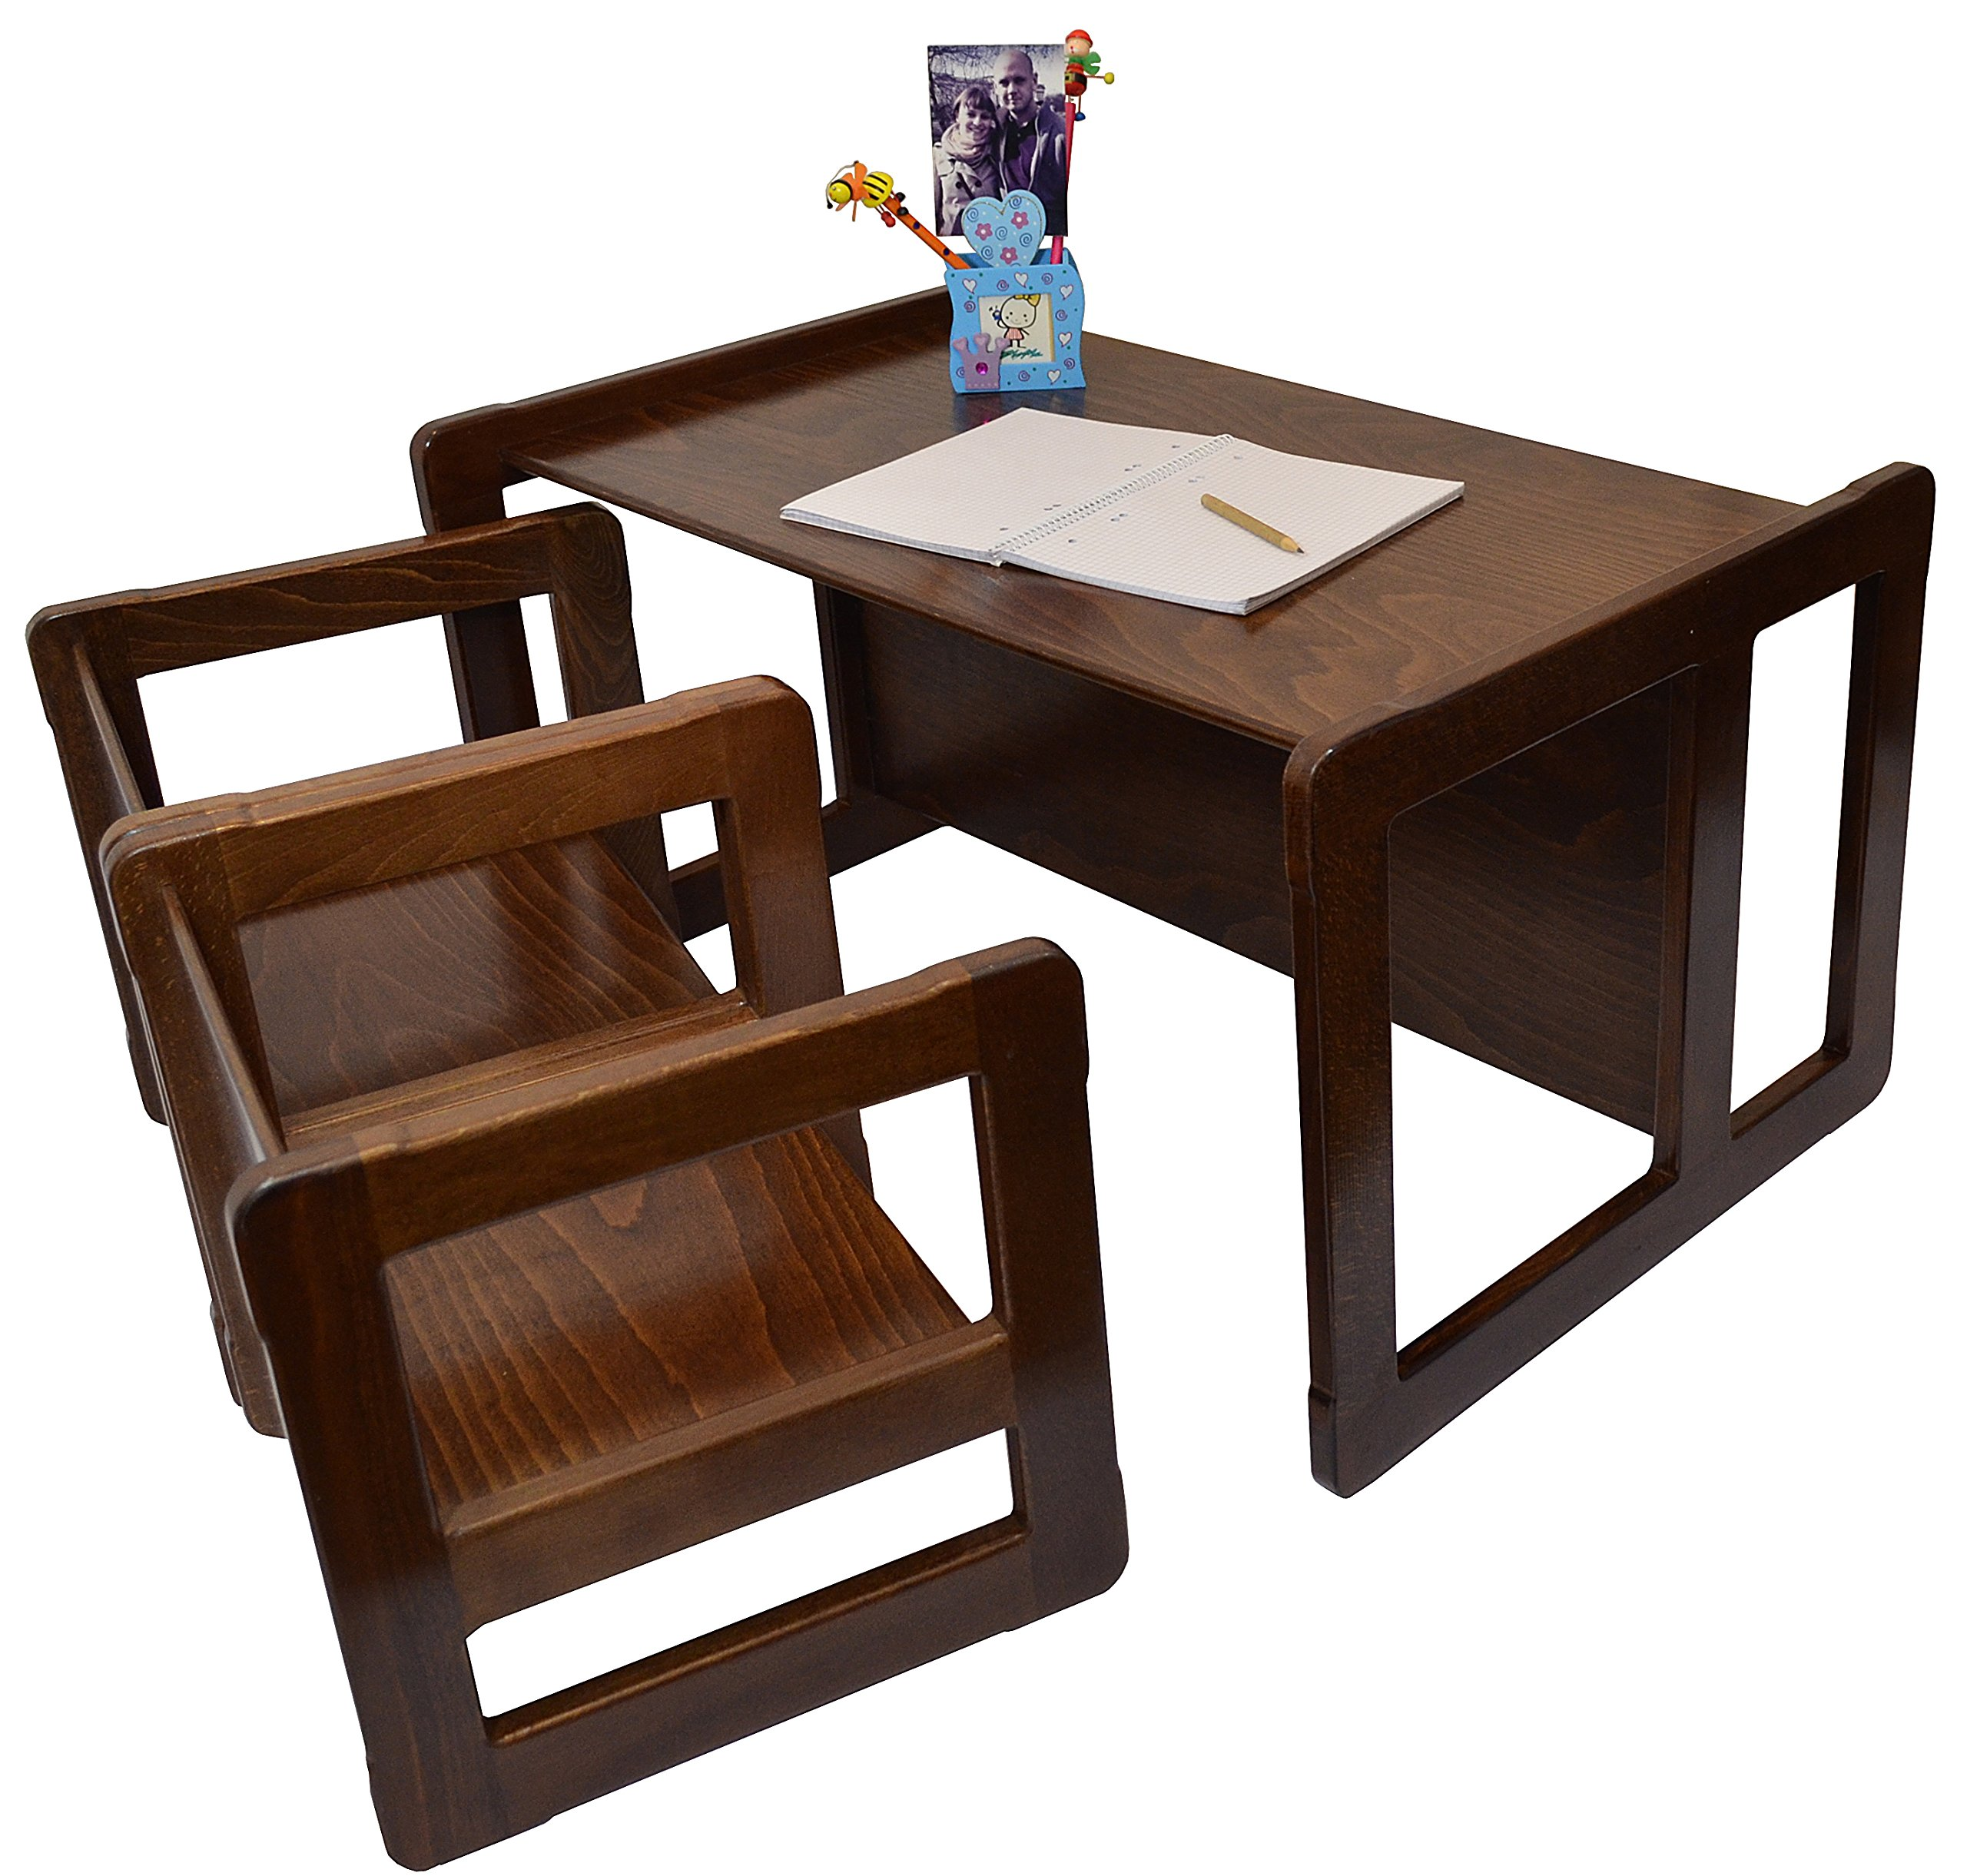 3 in 1 Childrens Multifunctional Furniture Set of 3, Two Small Chairs or Tables and One Large Bench or Table Beech Wood, Dark Stained